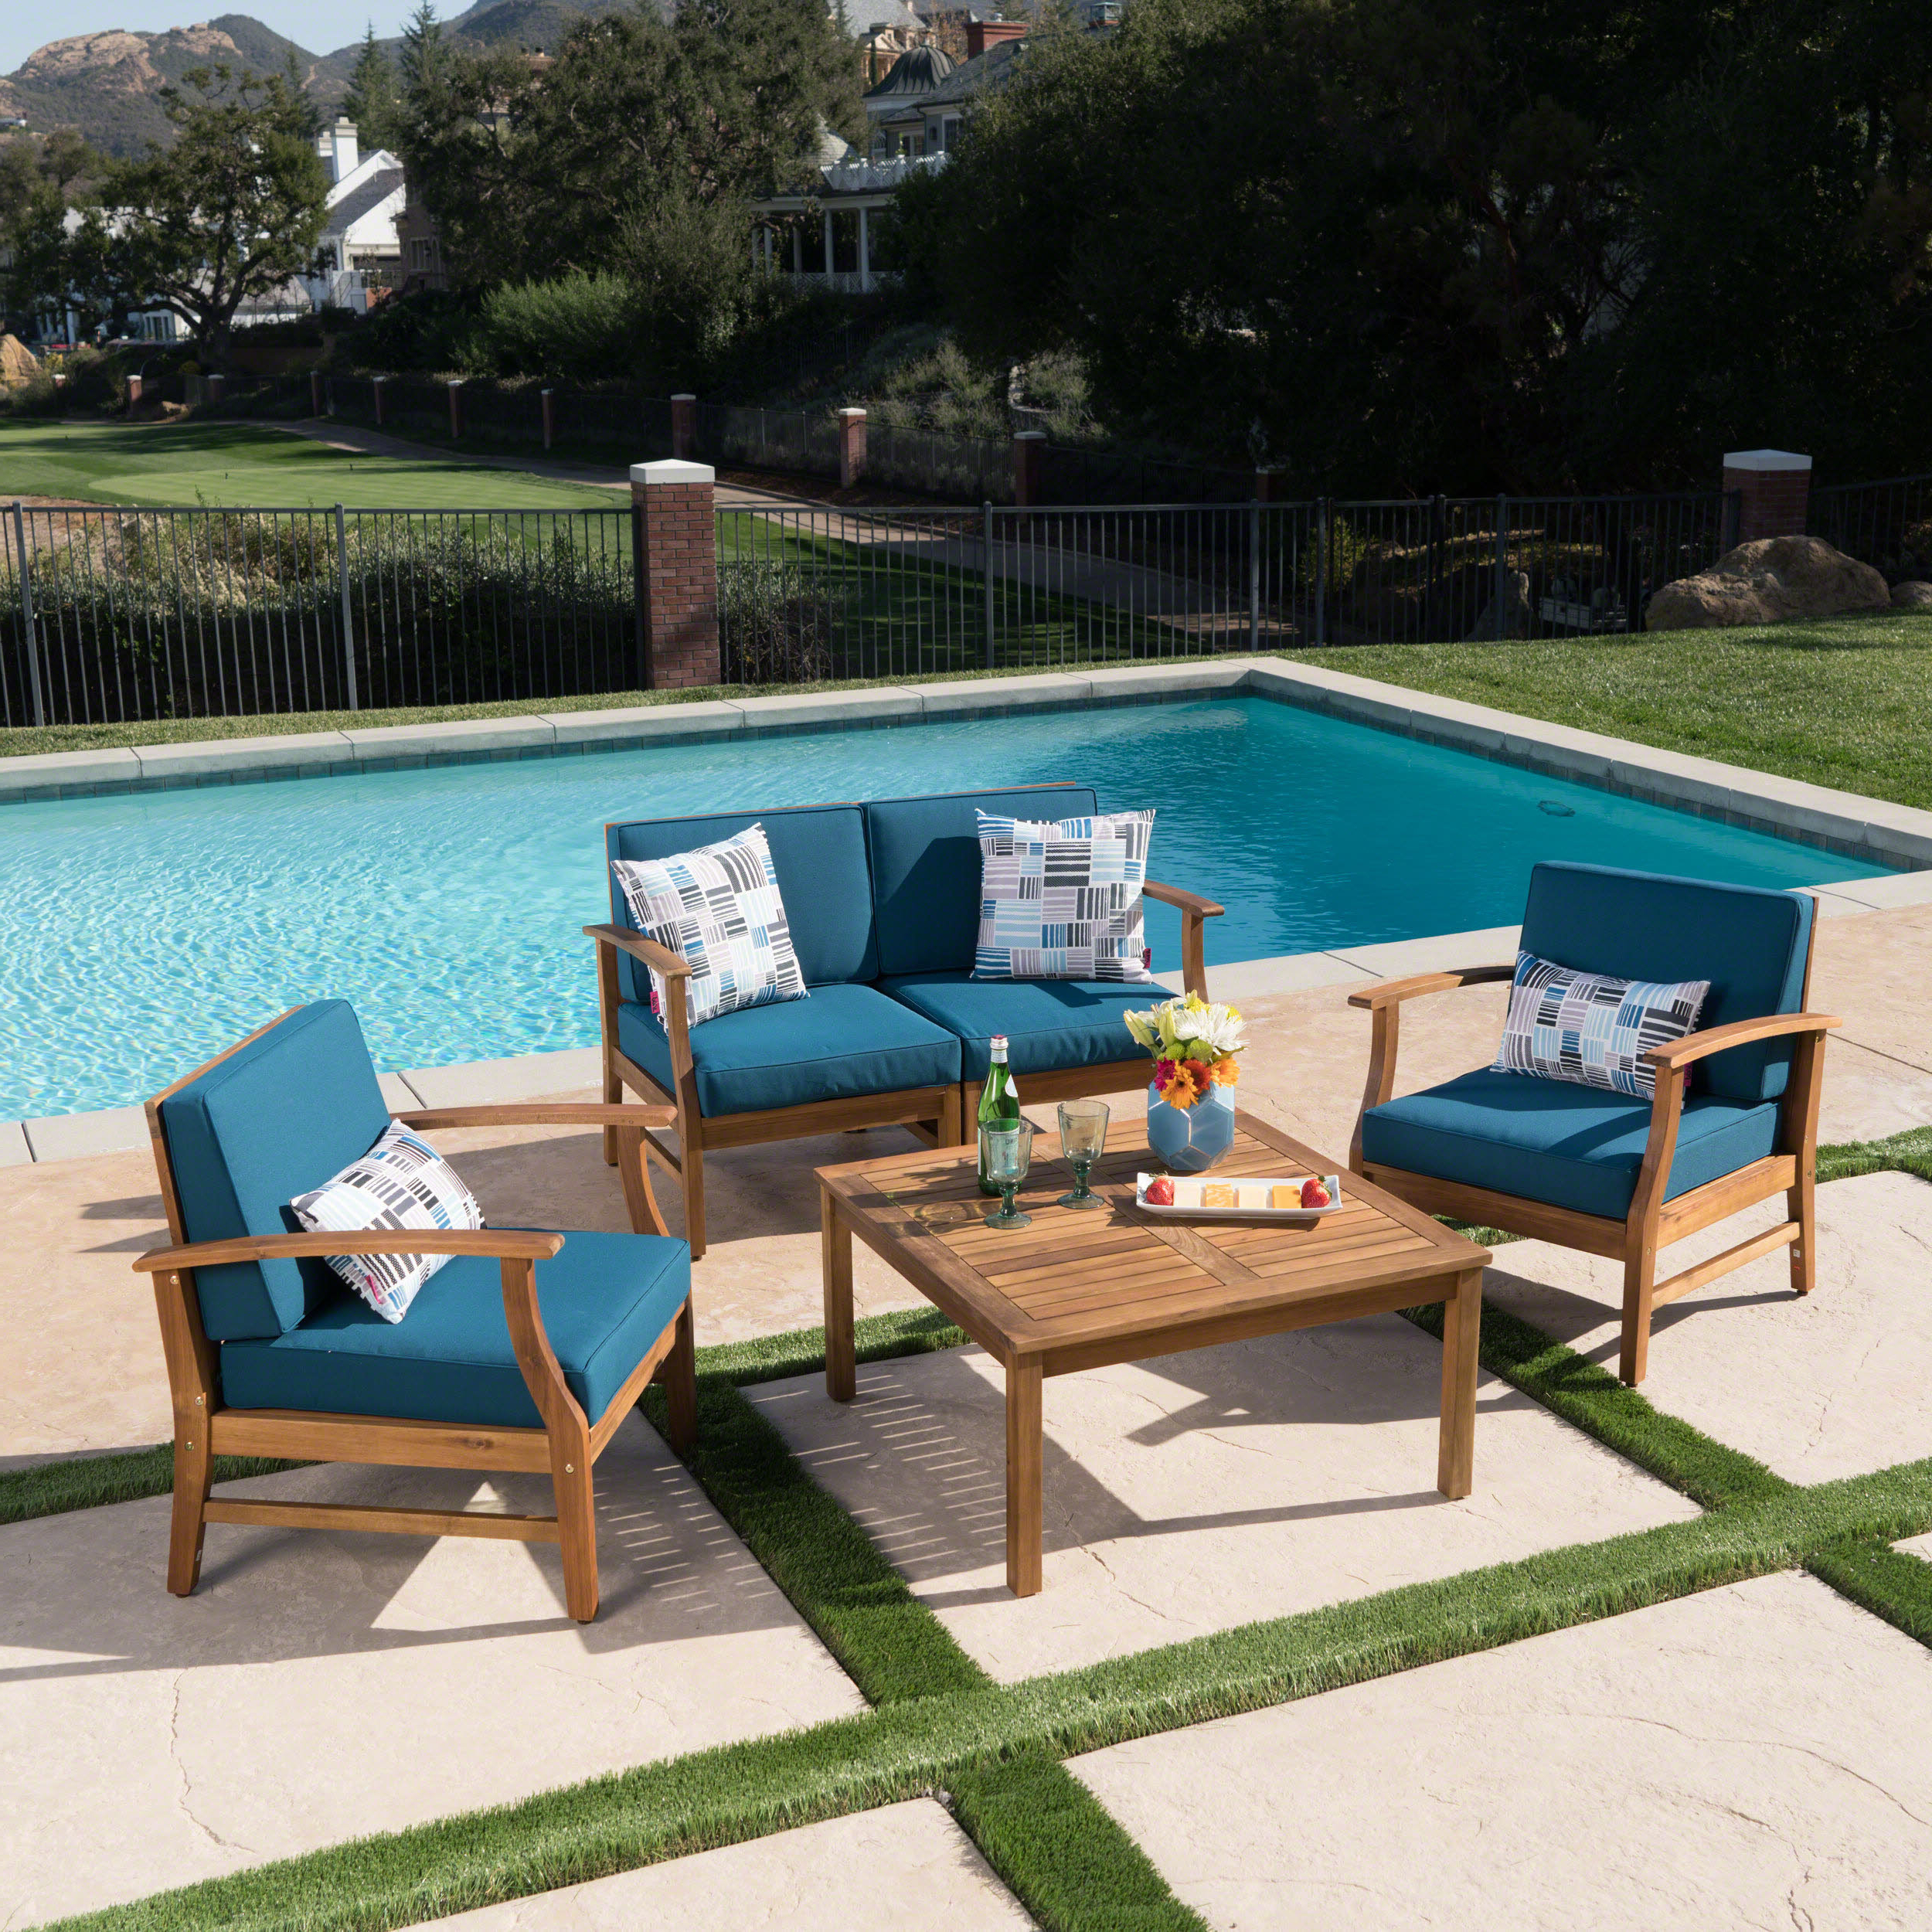 Famous Antonia Teak Patio Sectionals With Cushions With Regard To Antonia 4 Piece Sofa Set With Cushions (View 15 of 25)